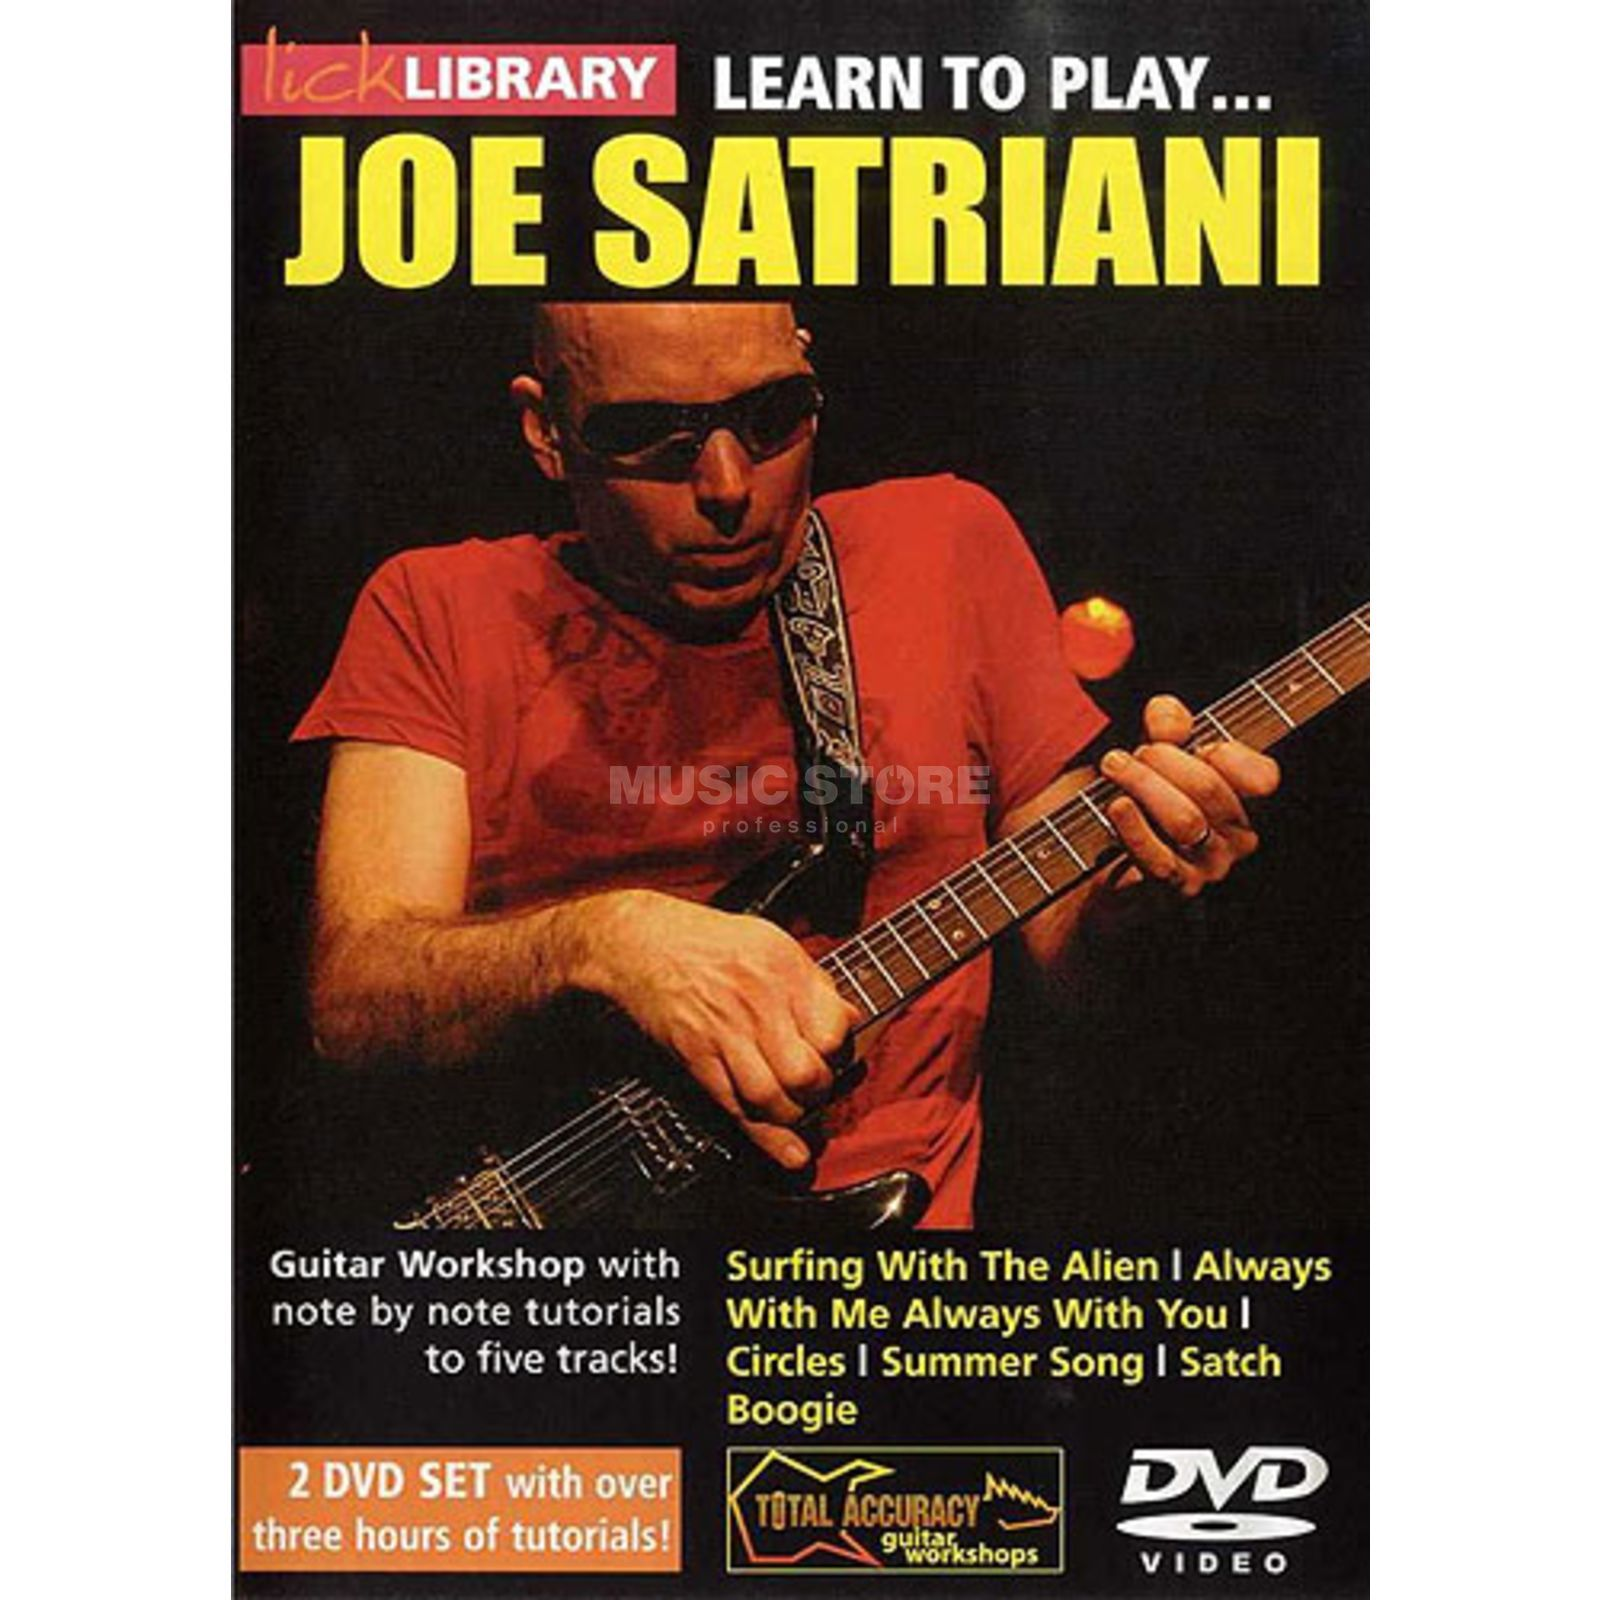 Roadrock International  Lick Library: Learn To Play Joe Satriani DVD Produktbillede